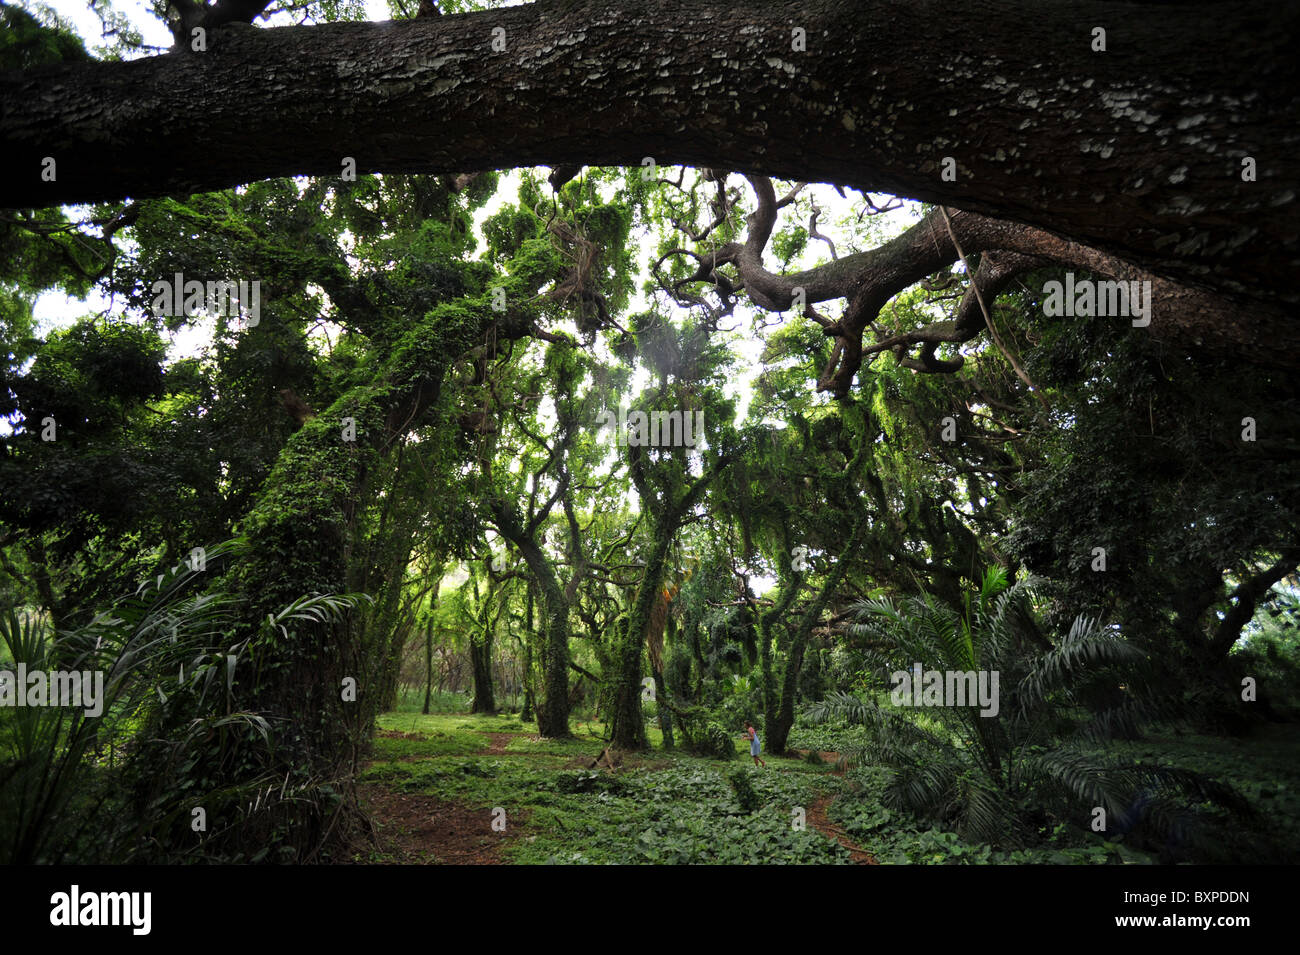 Jungle Photo Stock